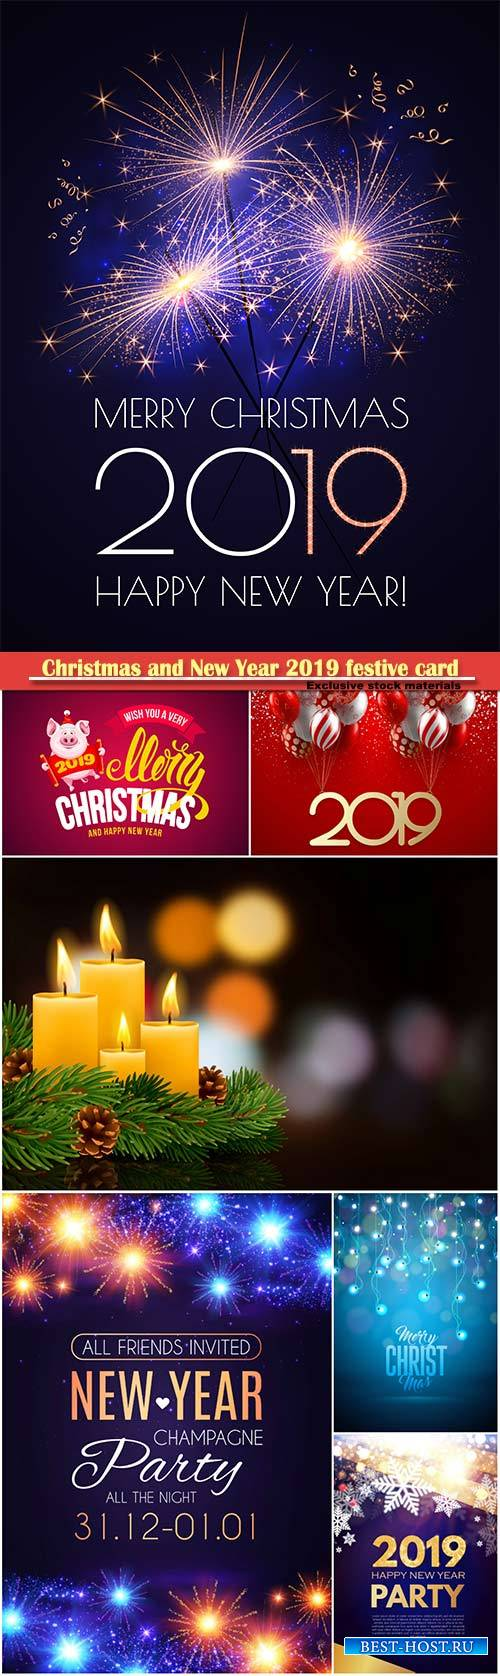 Christmas and New Year 2019 festive card